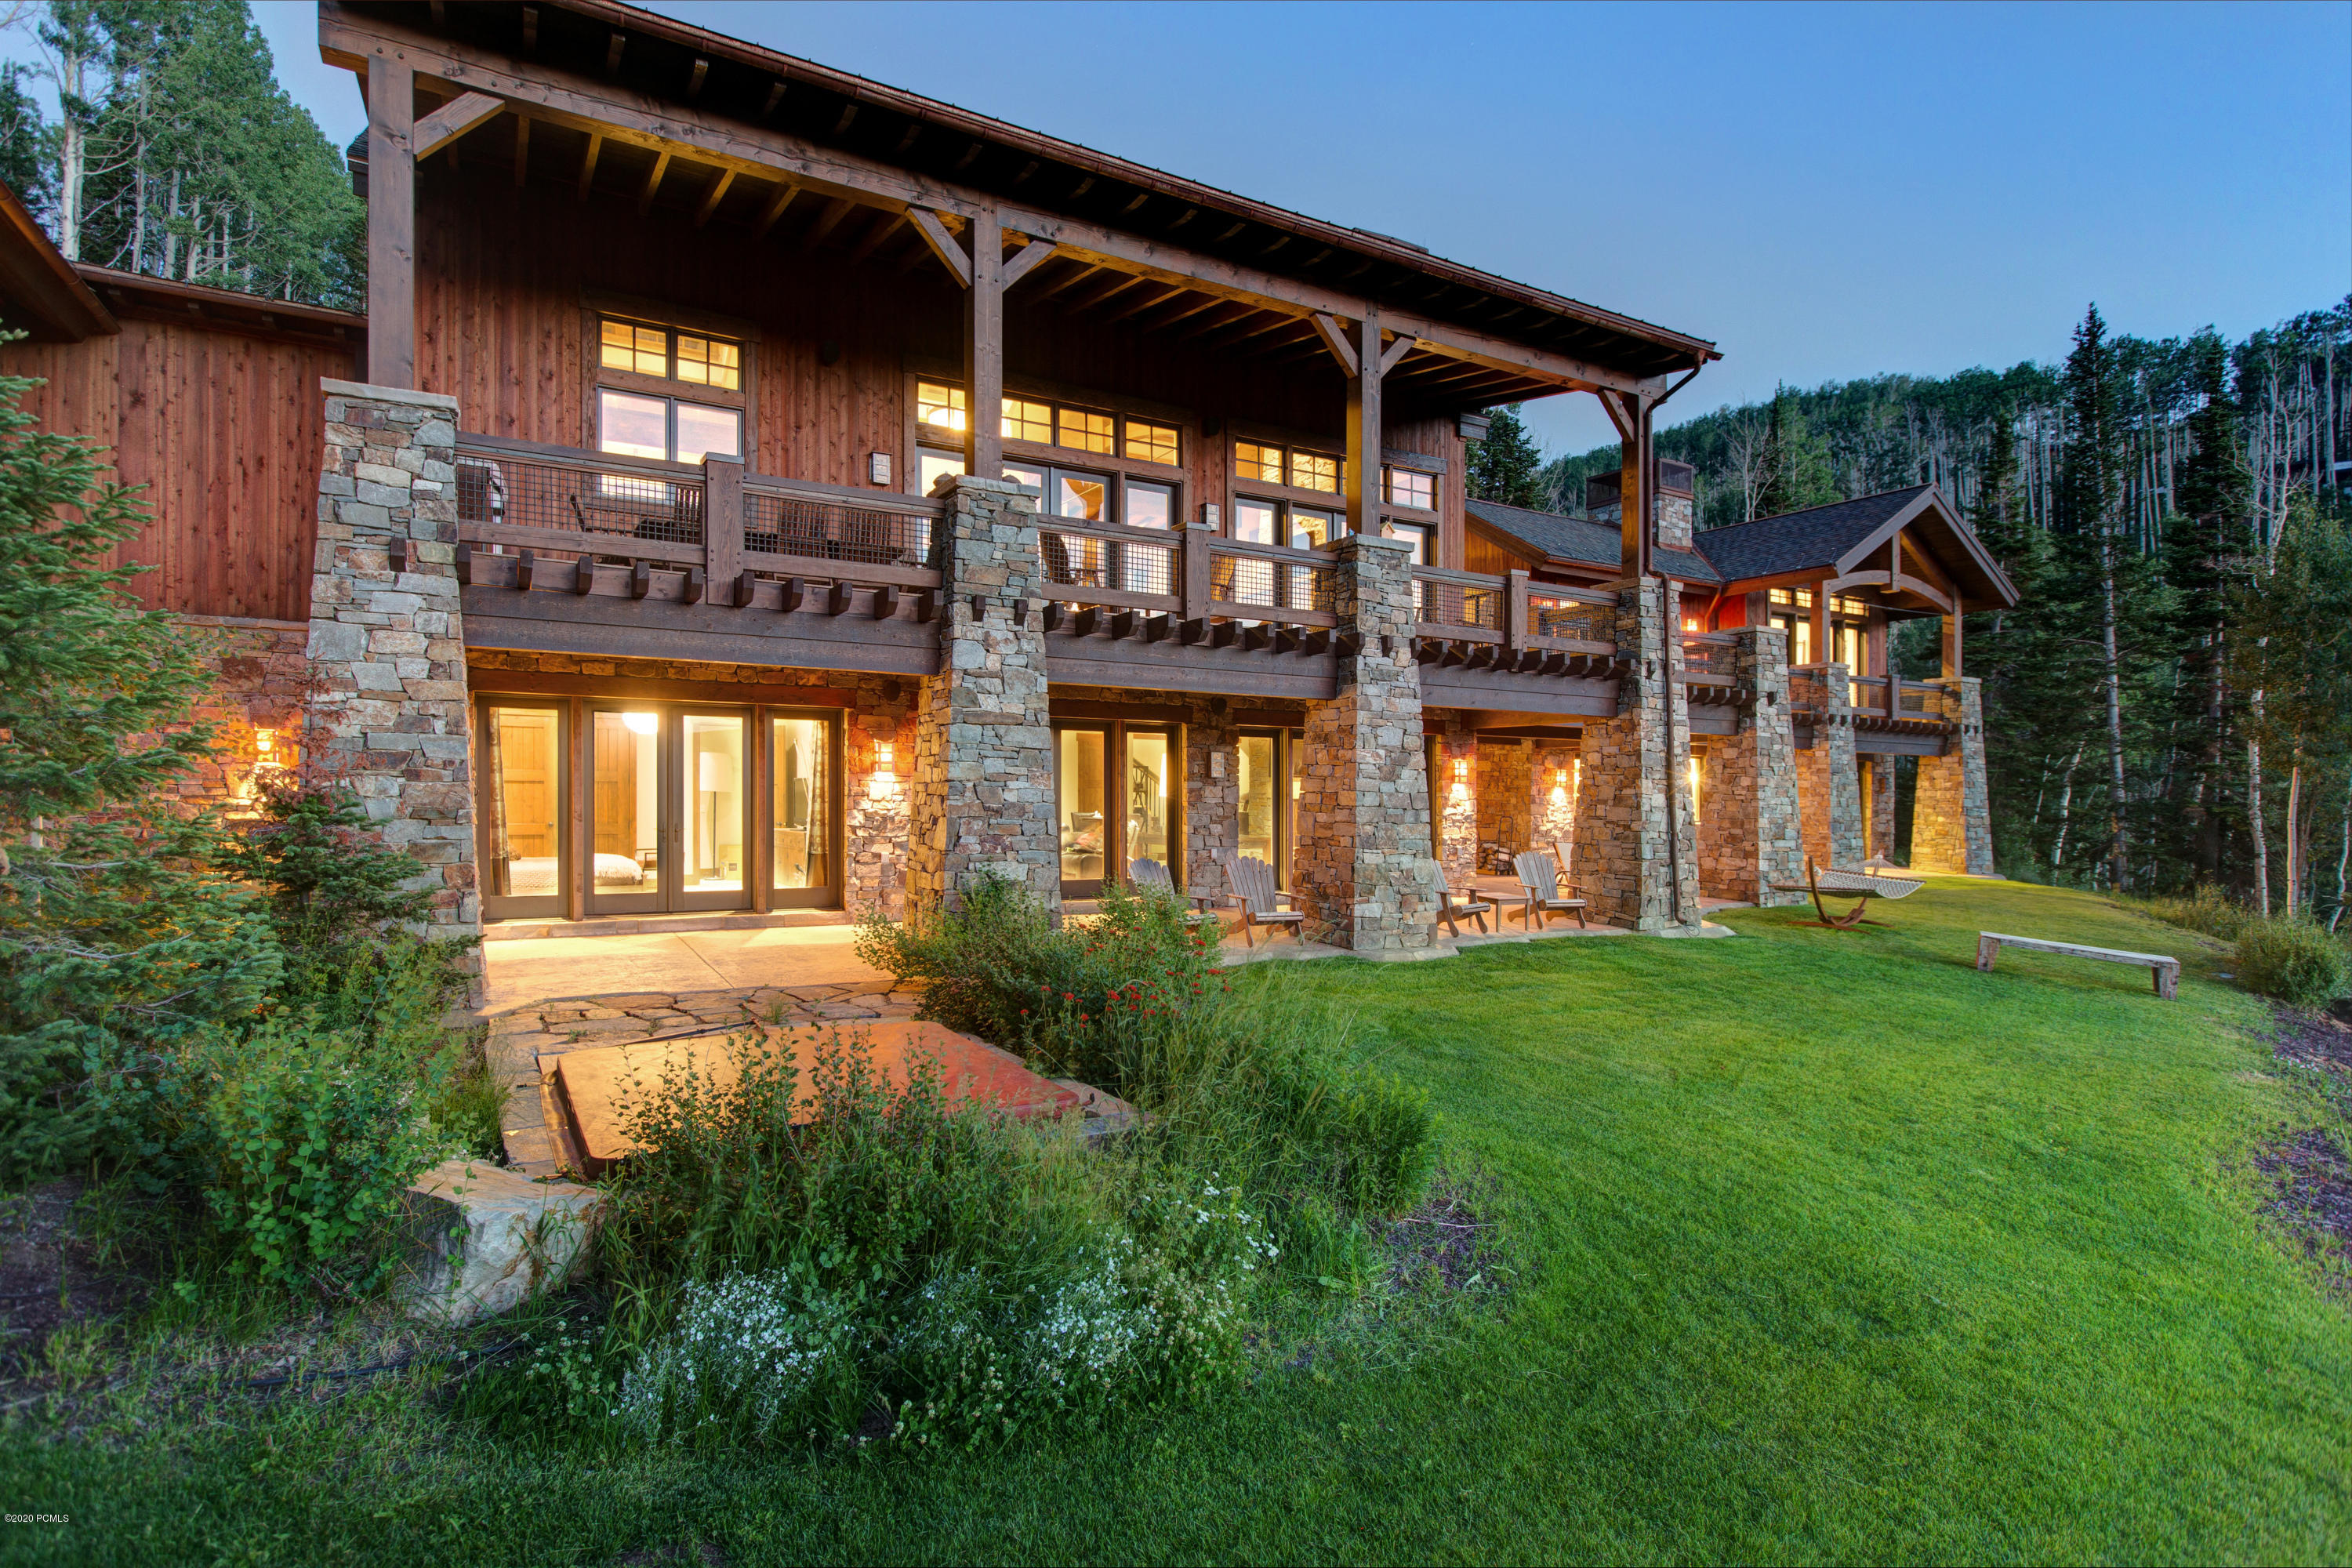 182 White Pine Canyon Road, Park City, Utah 84060, 5 Bedrooms Bedrooms, ,6 BathroomsBathrooms,Single Family,For Sale,White Pine Canyon,12003490